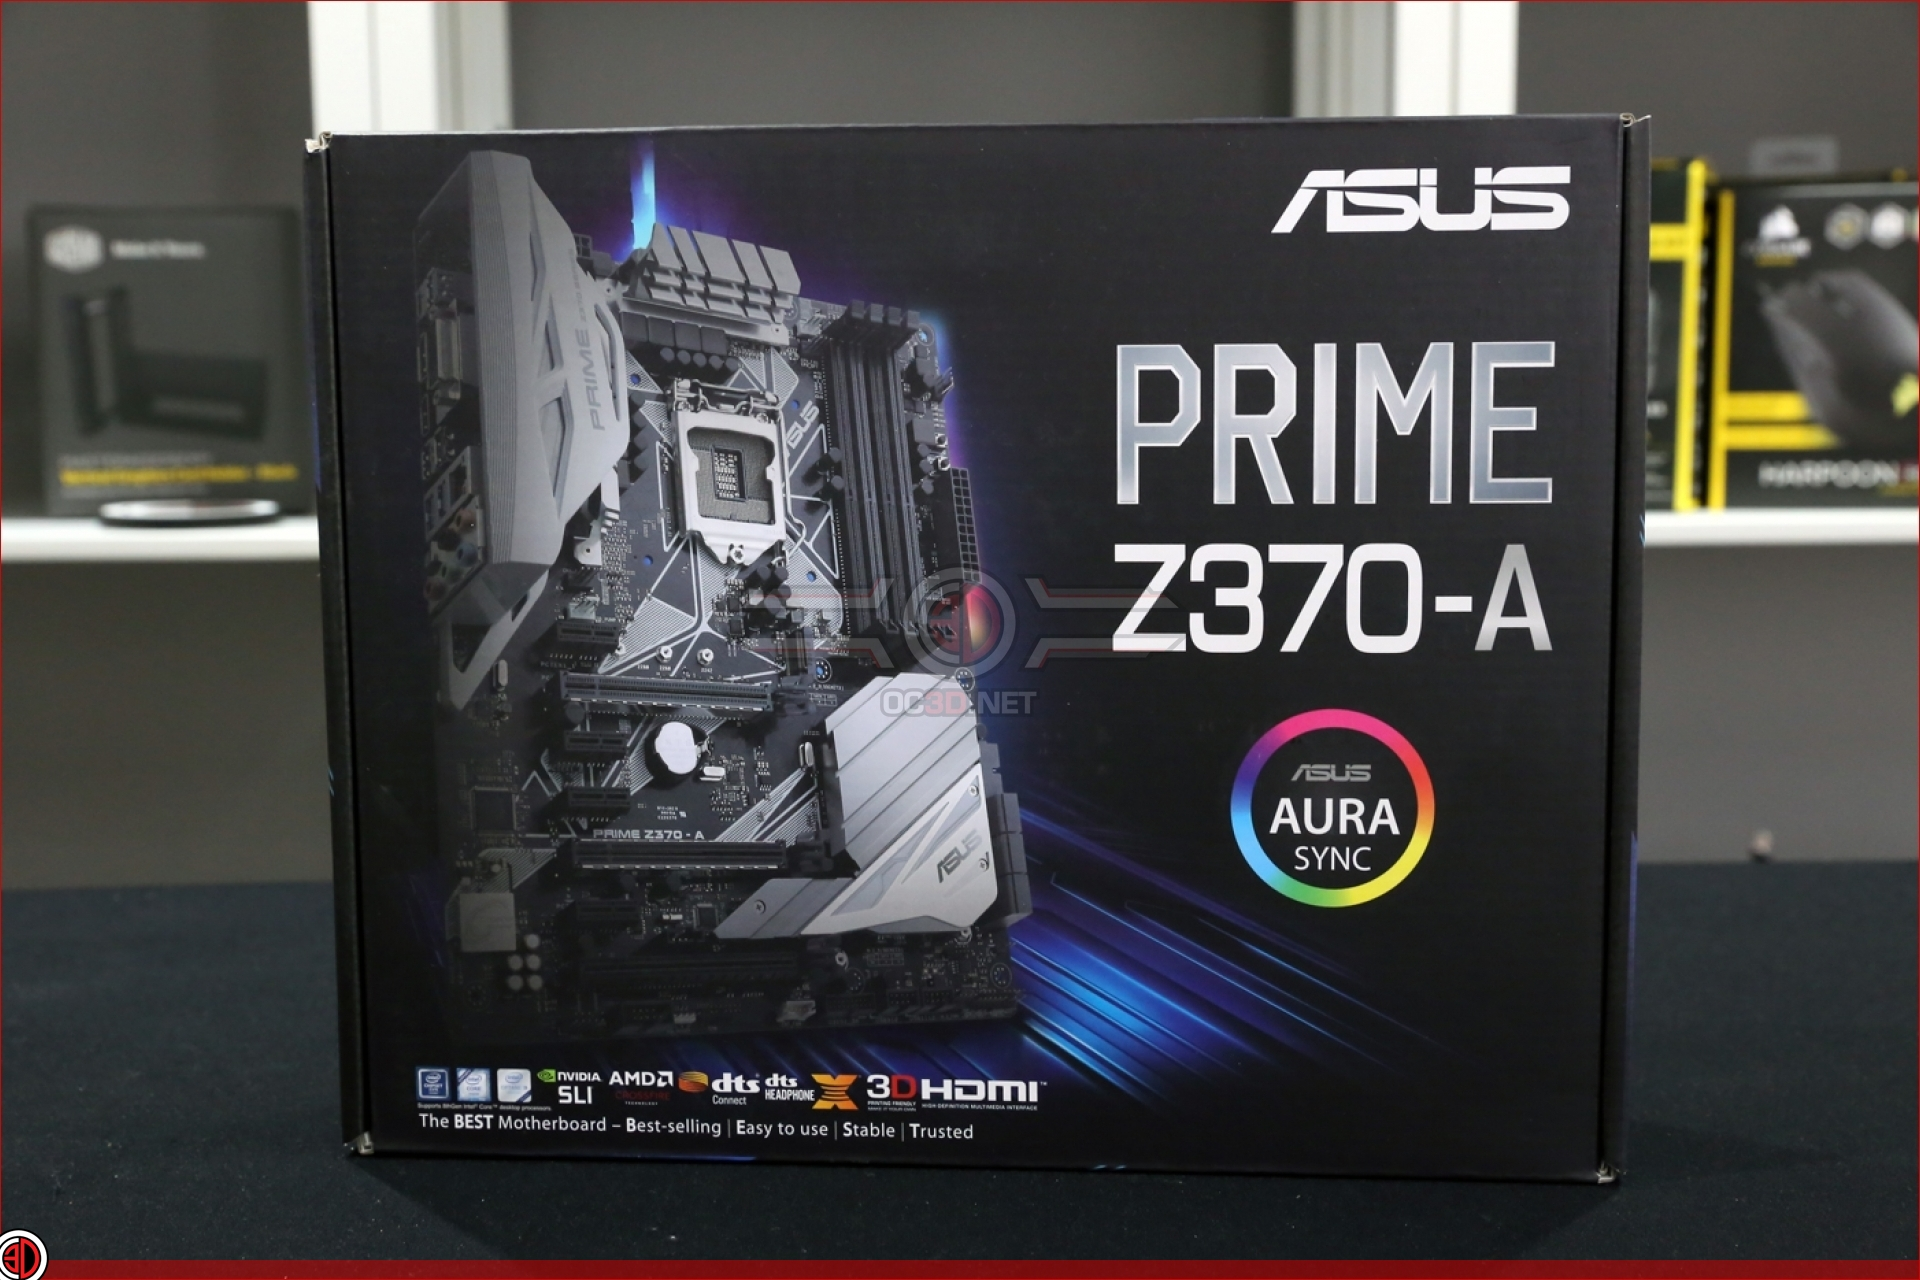 Intel Coffee Lake i7 8700K Review | ASUS Z370-A Prime | CPU